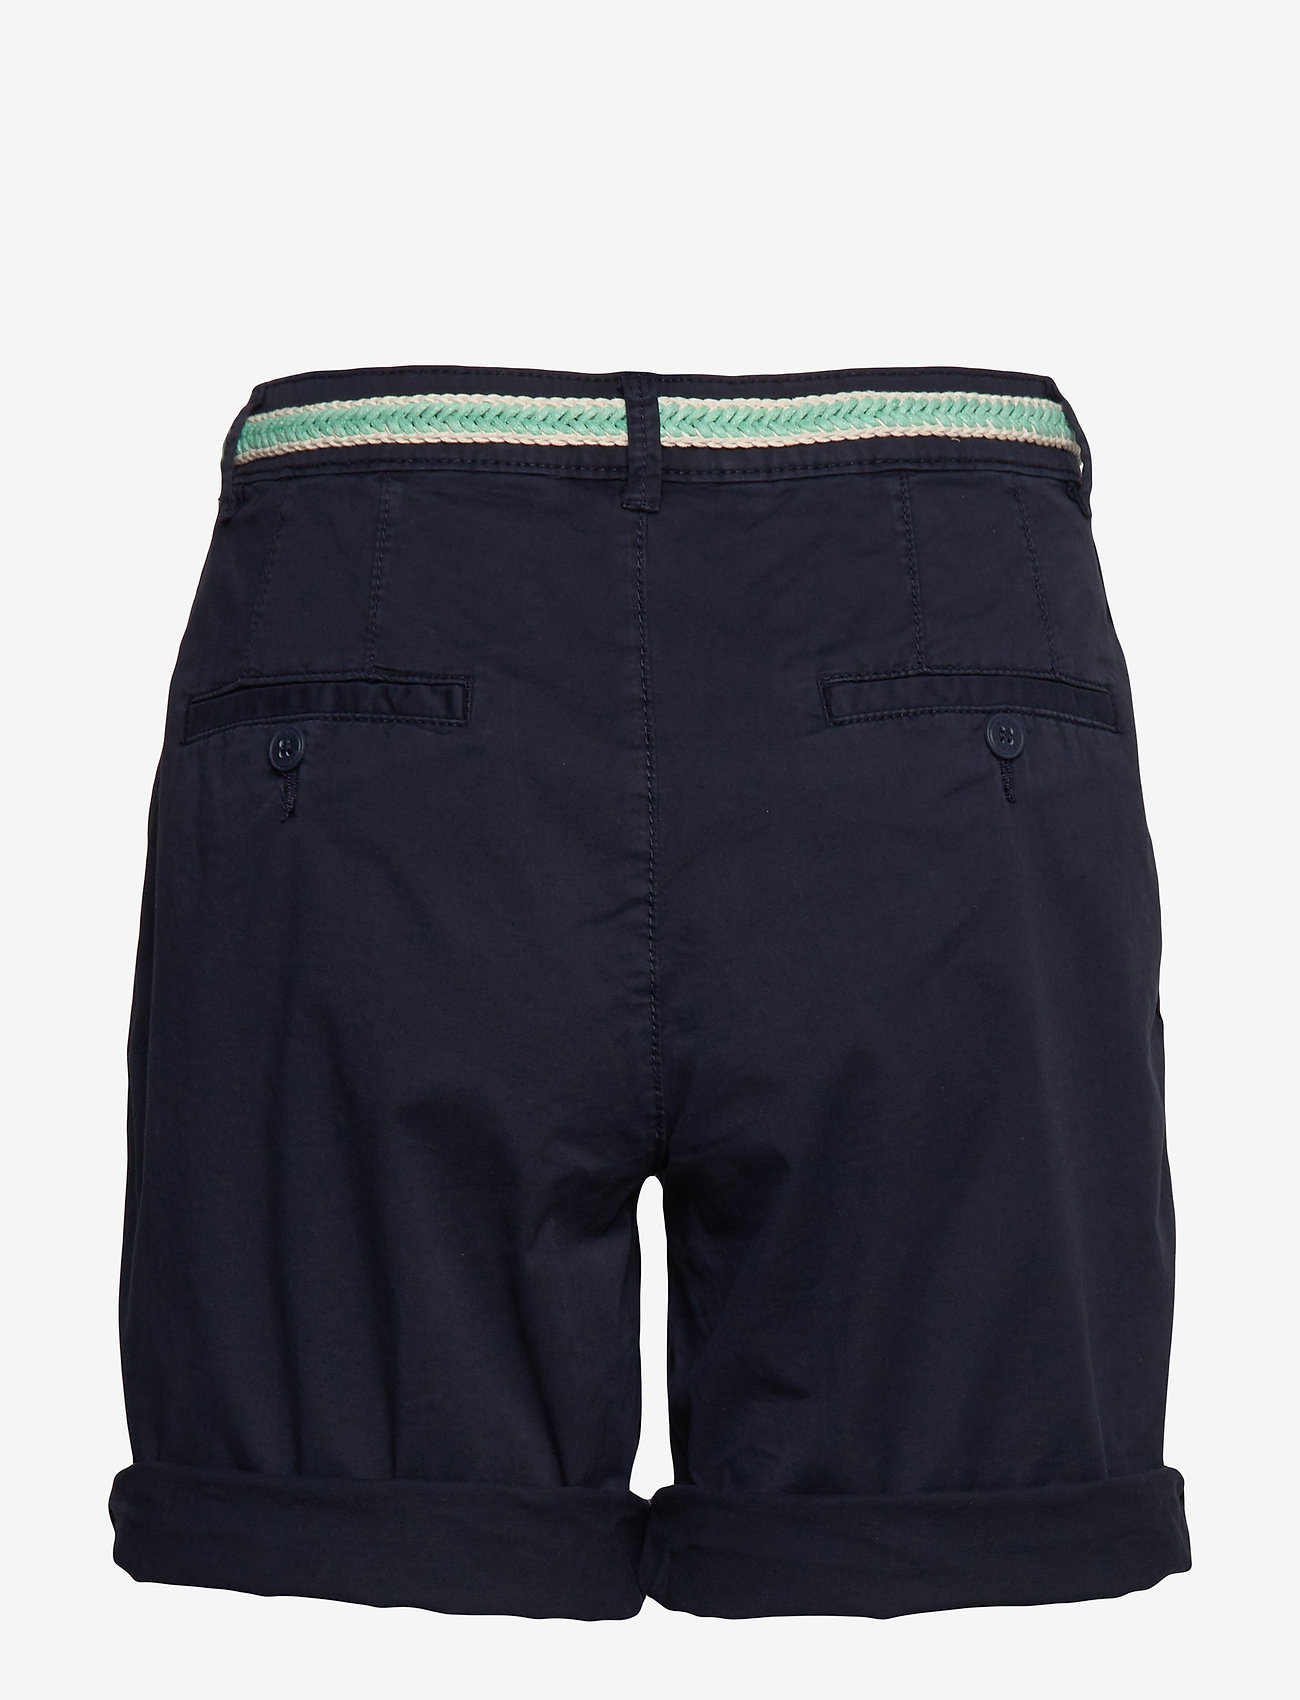 Esprit Casual - Shorts woven - chino shorts - navy - 1